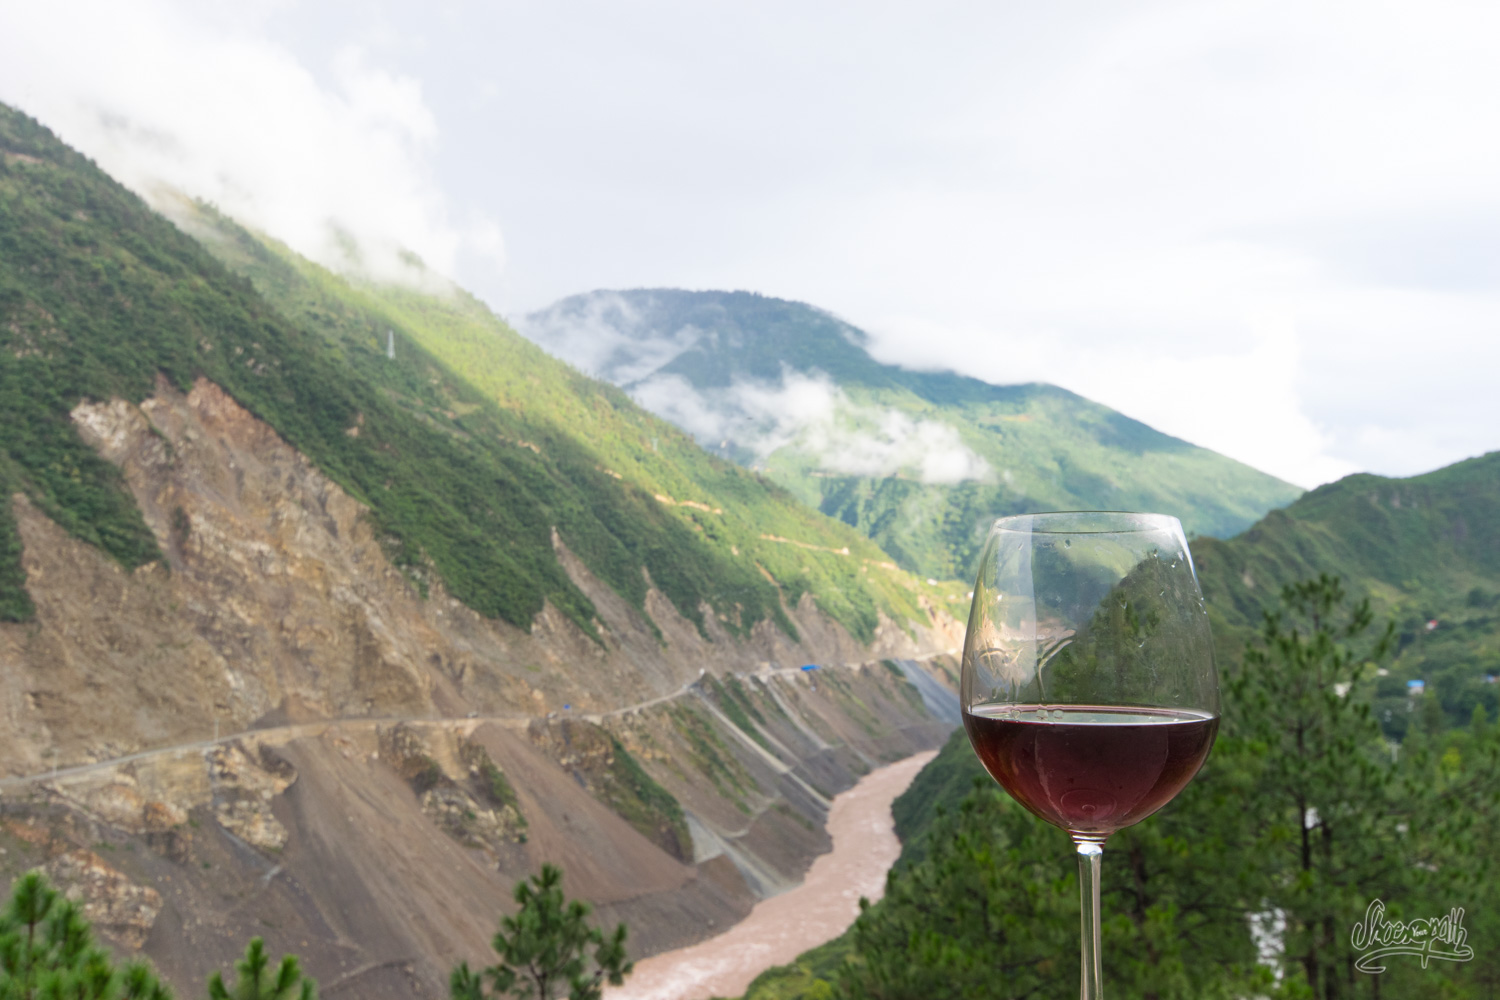 A glass of wine from Yunnan, wine from the Mekong, with a view on the valley